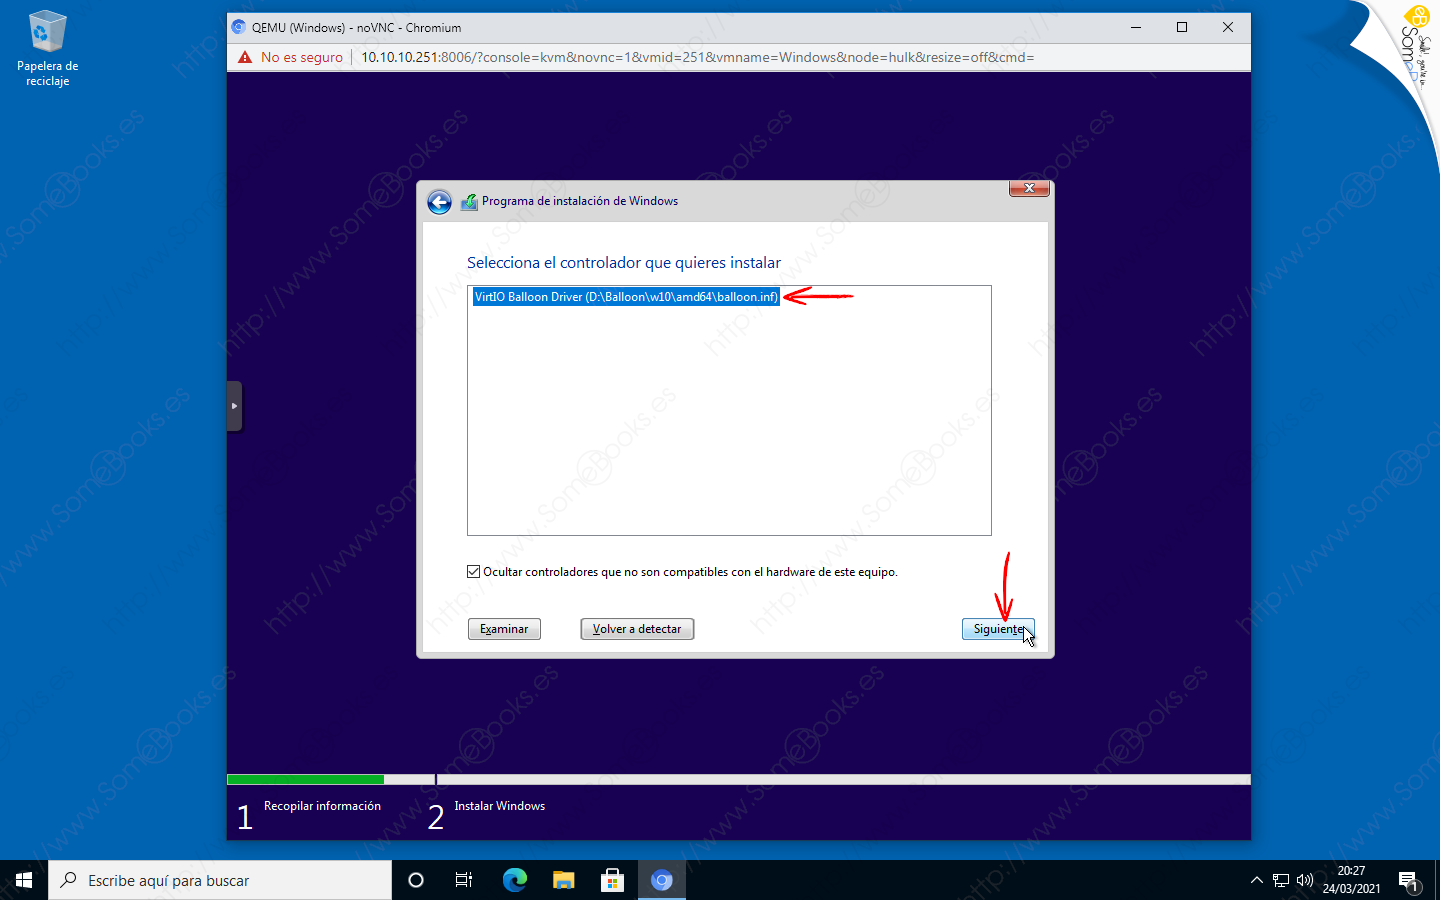 Instalar-Windows-10-en-una-maquina-virtual-sobre-Proxmox-VE-013